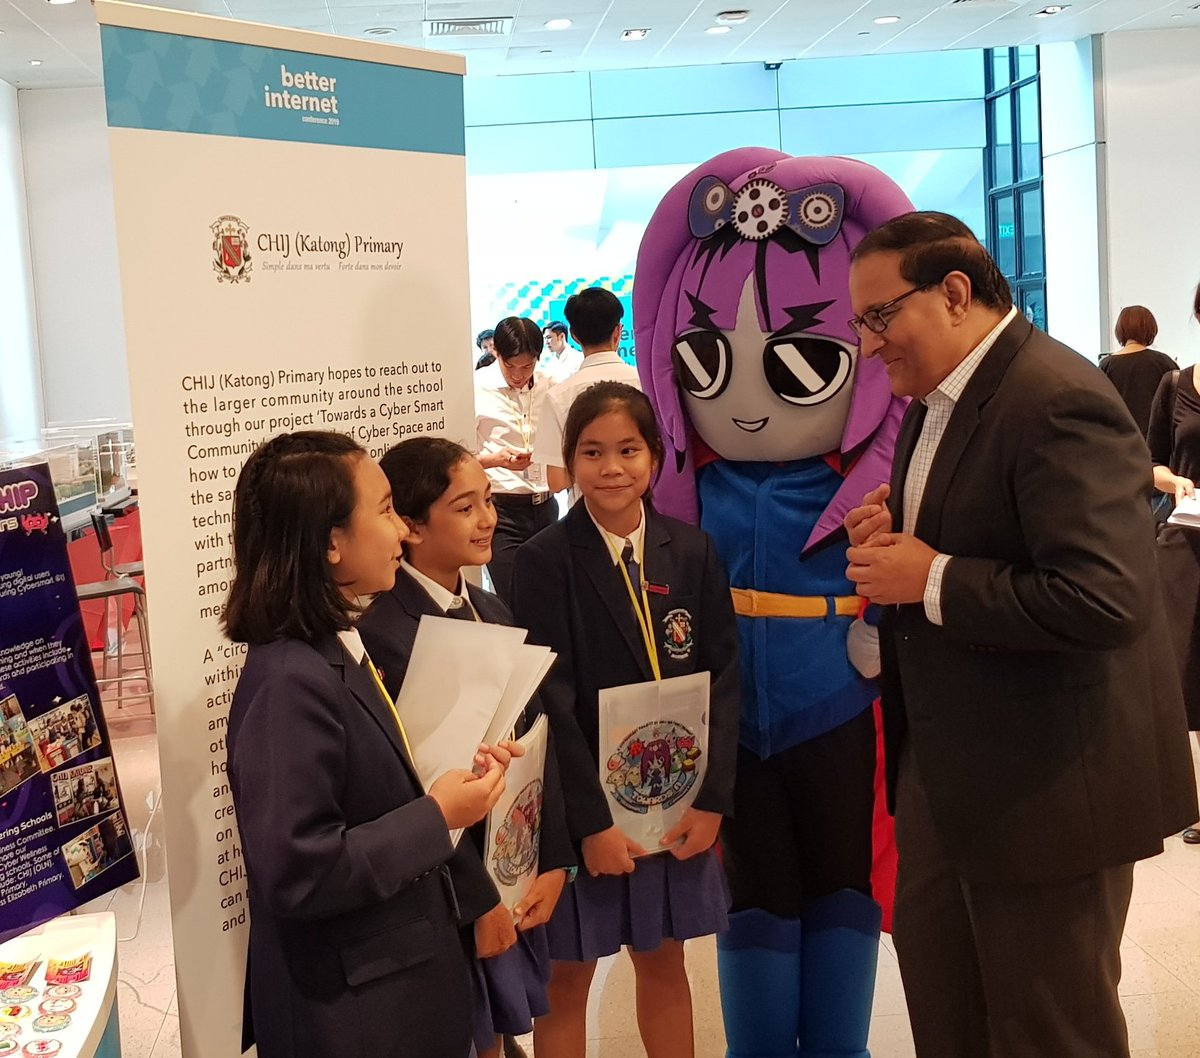 S Iswaran, Minister for Communications and Information of Singapore interacting with children at the exhibition during inaugural 'Better Internet Conference' . Photo coourtesy: Twitter@MediaLiteracyCouncil